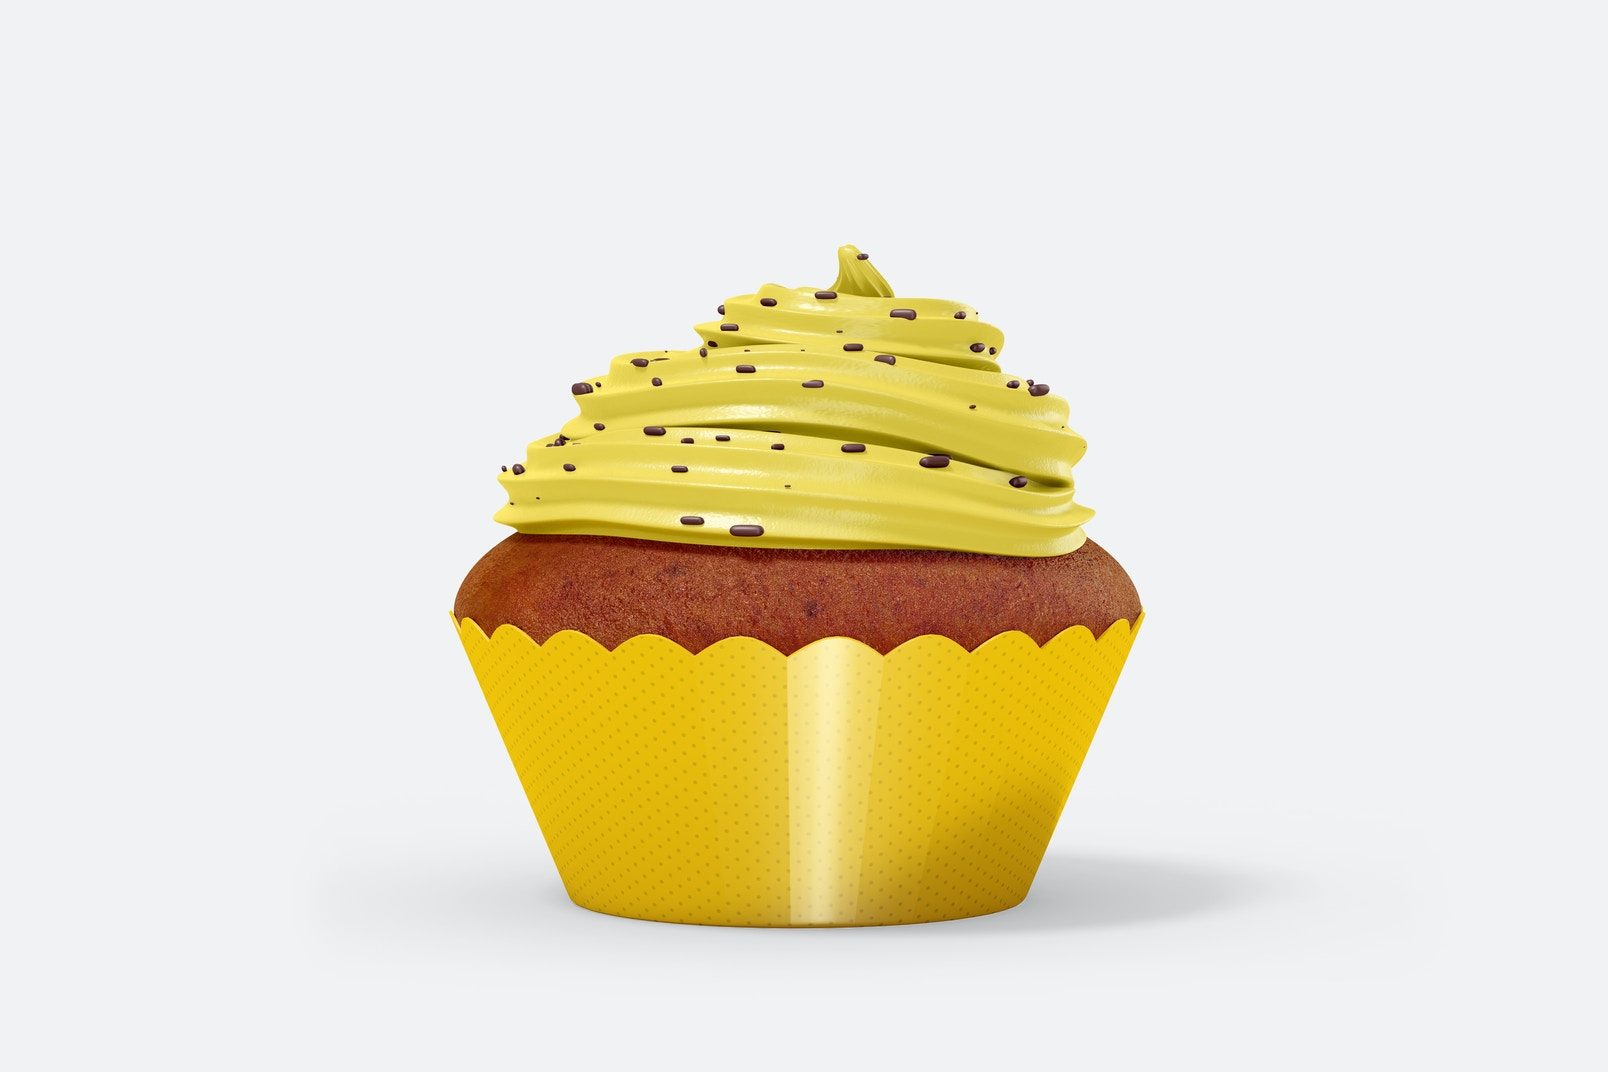 Cupcake with Wrapper Mockup, Front View